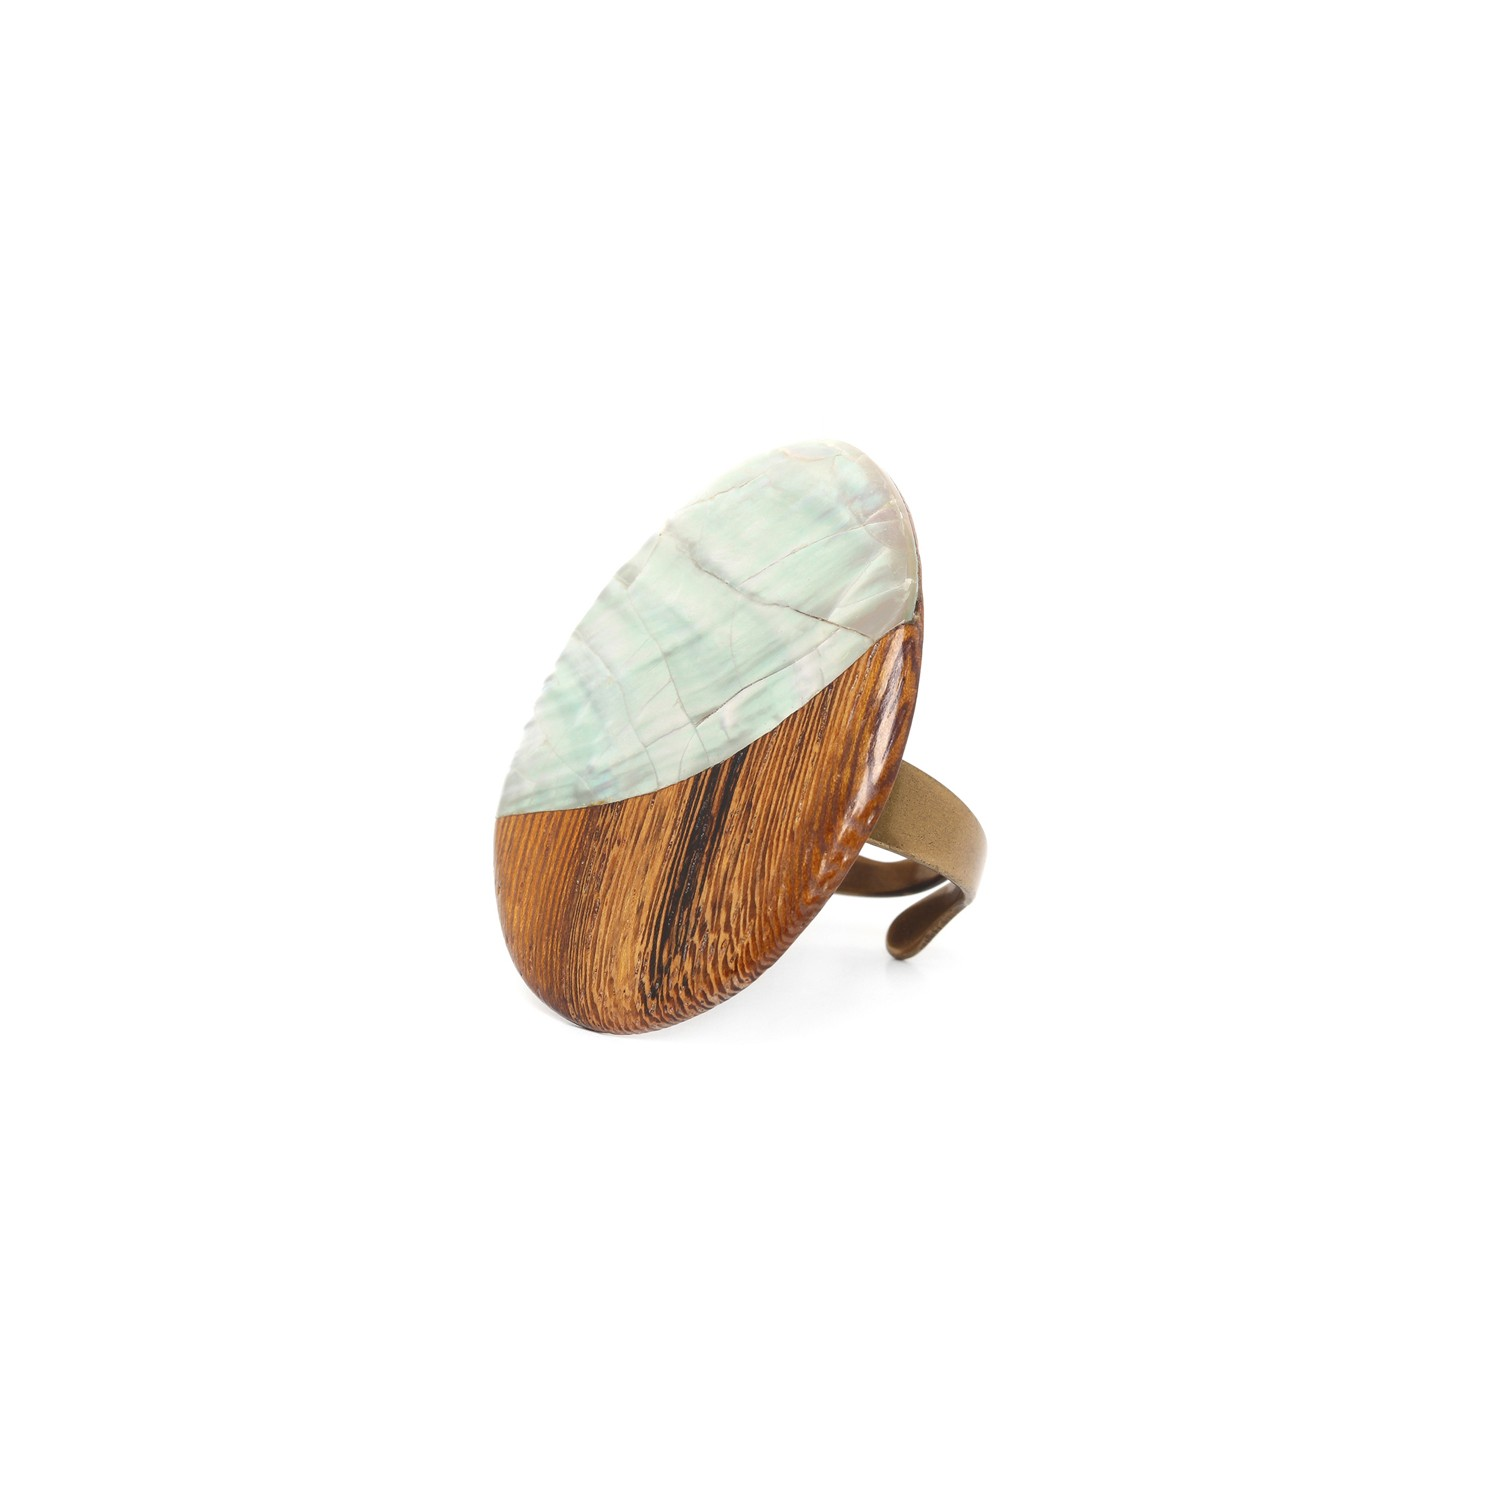 FOREST THERAPY wooden ring w/abalone